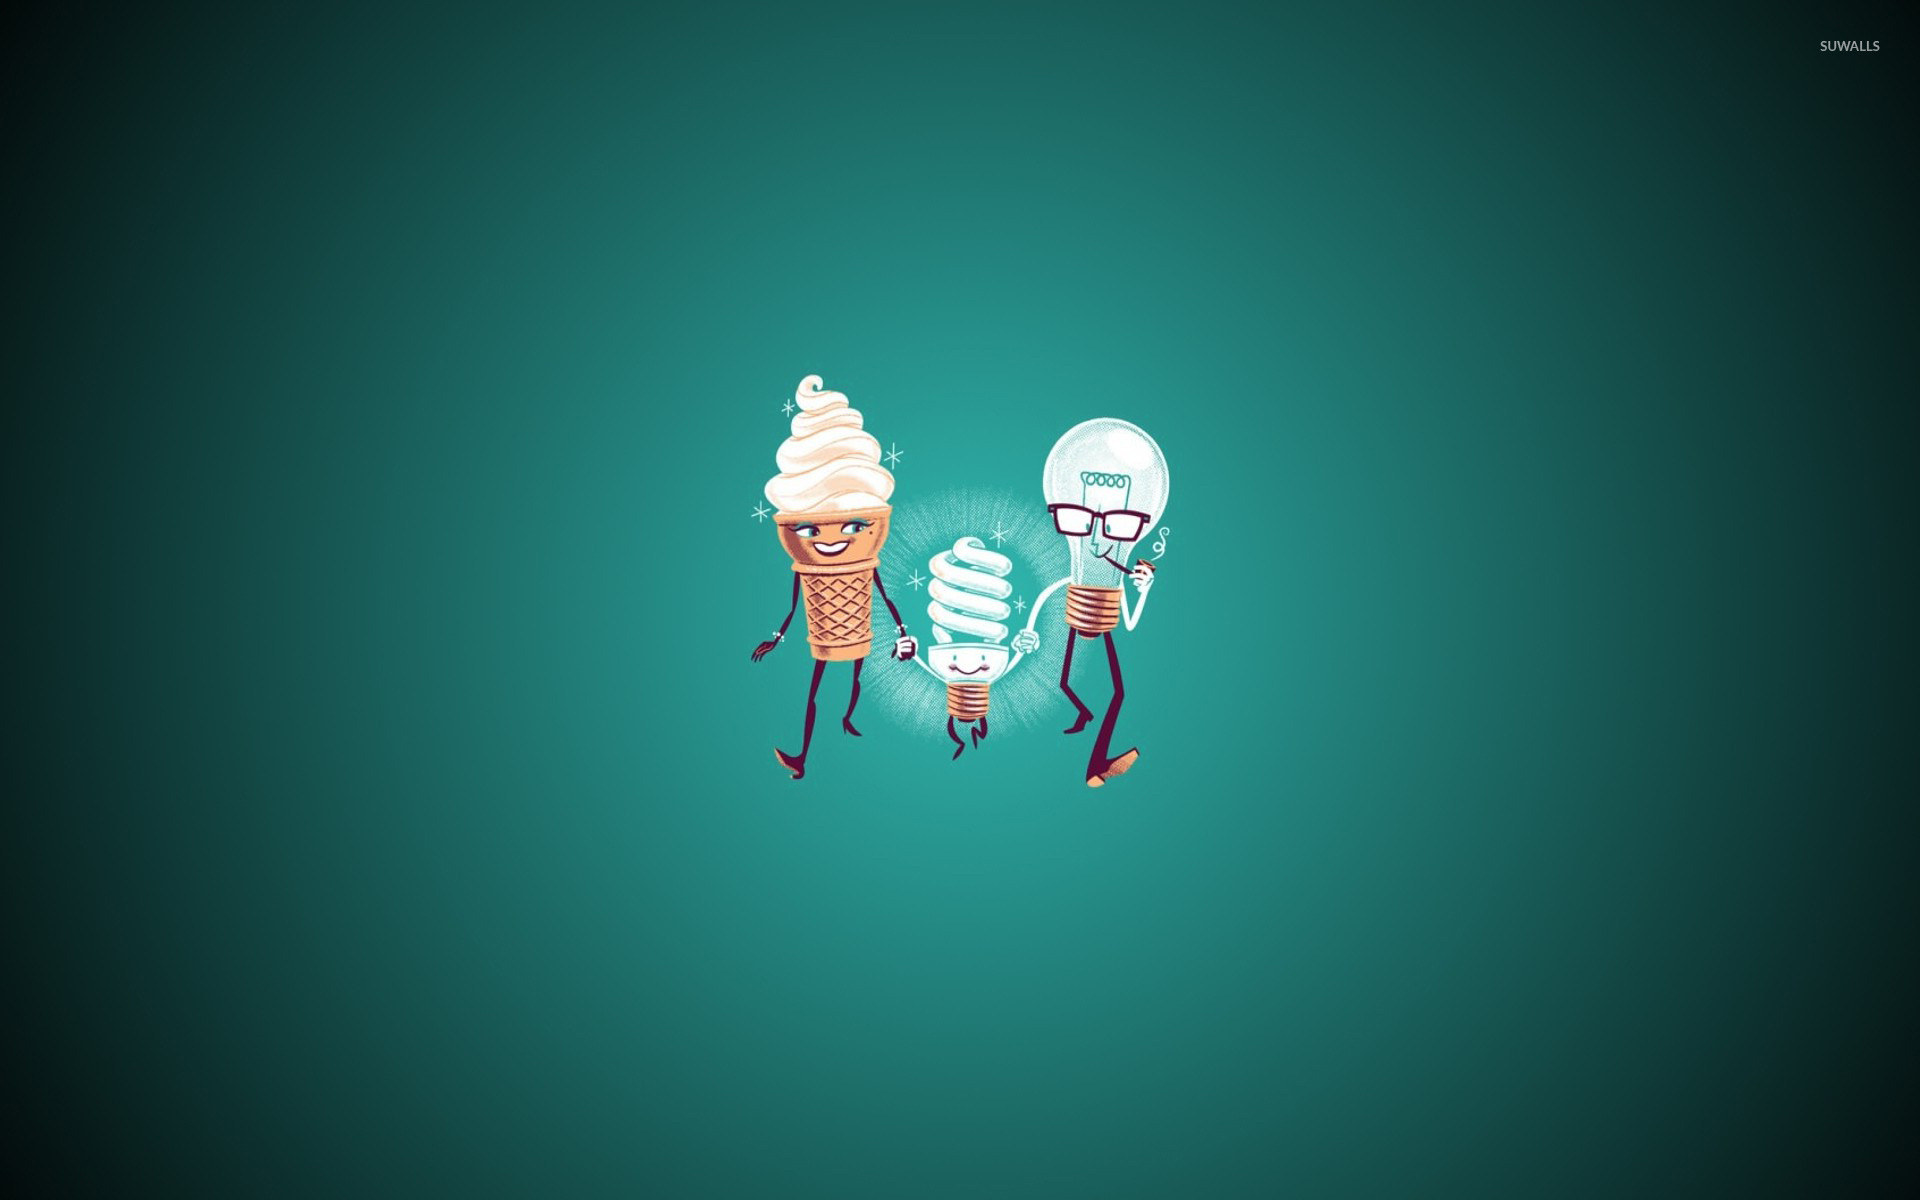 Ice cream and bulb family wallpaper funny wallpapers for Fun wallpaper for walls